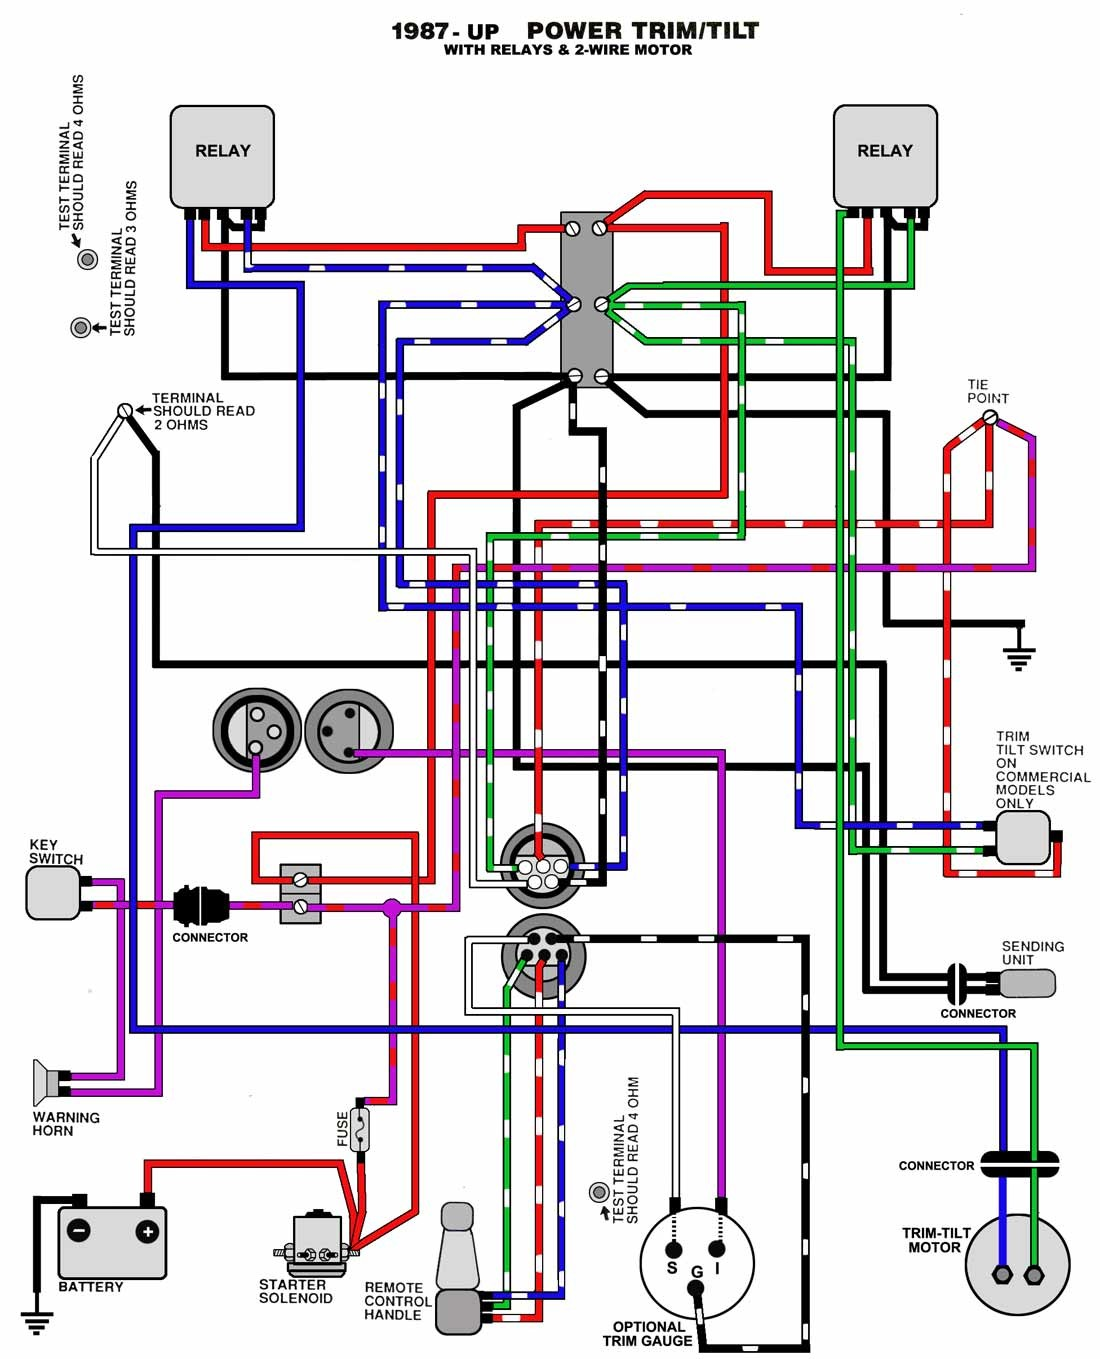 wiring diagram for mercury outboard motor free download wiring rh xwiaw us outboard motor wiring diagrams suzuki outboard motor wiring diagram